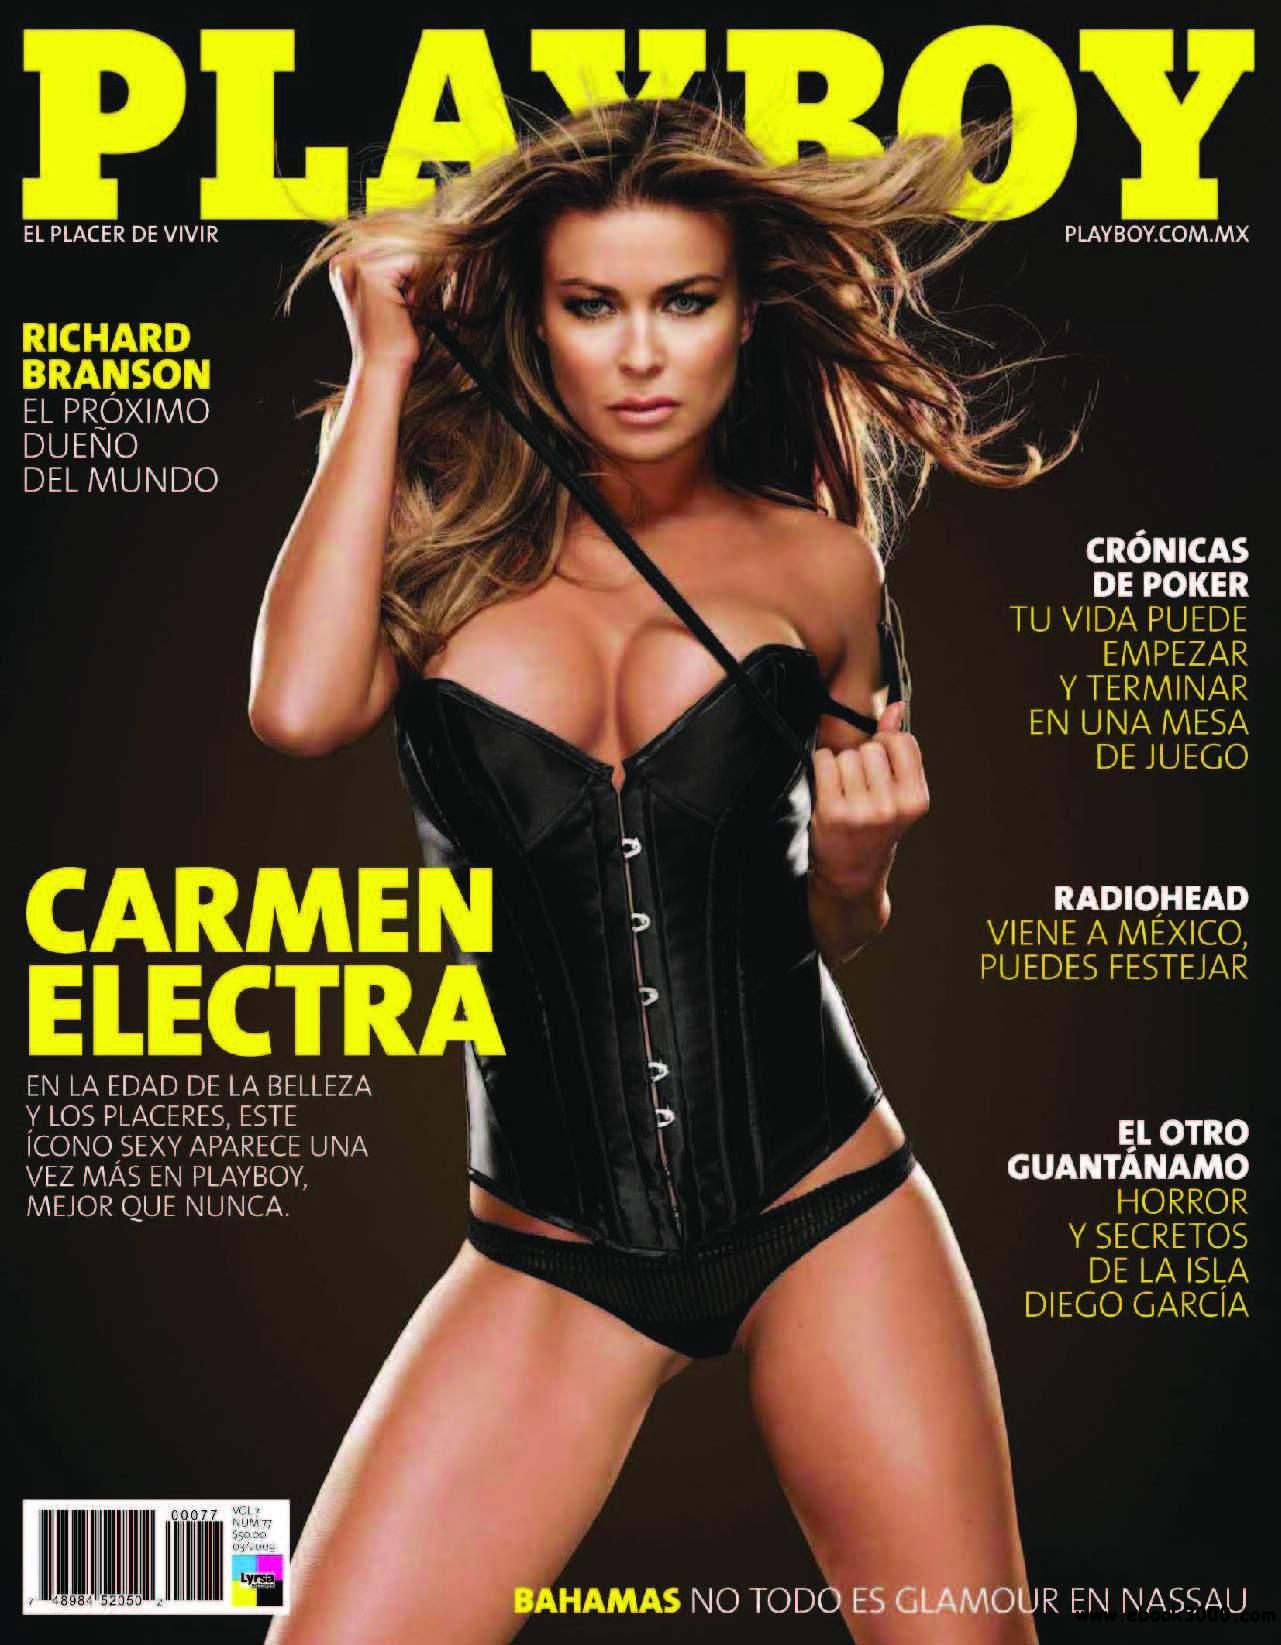 Playboy Mexico - March 2009 free download